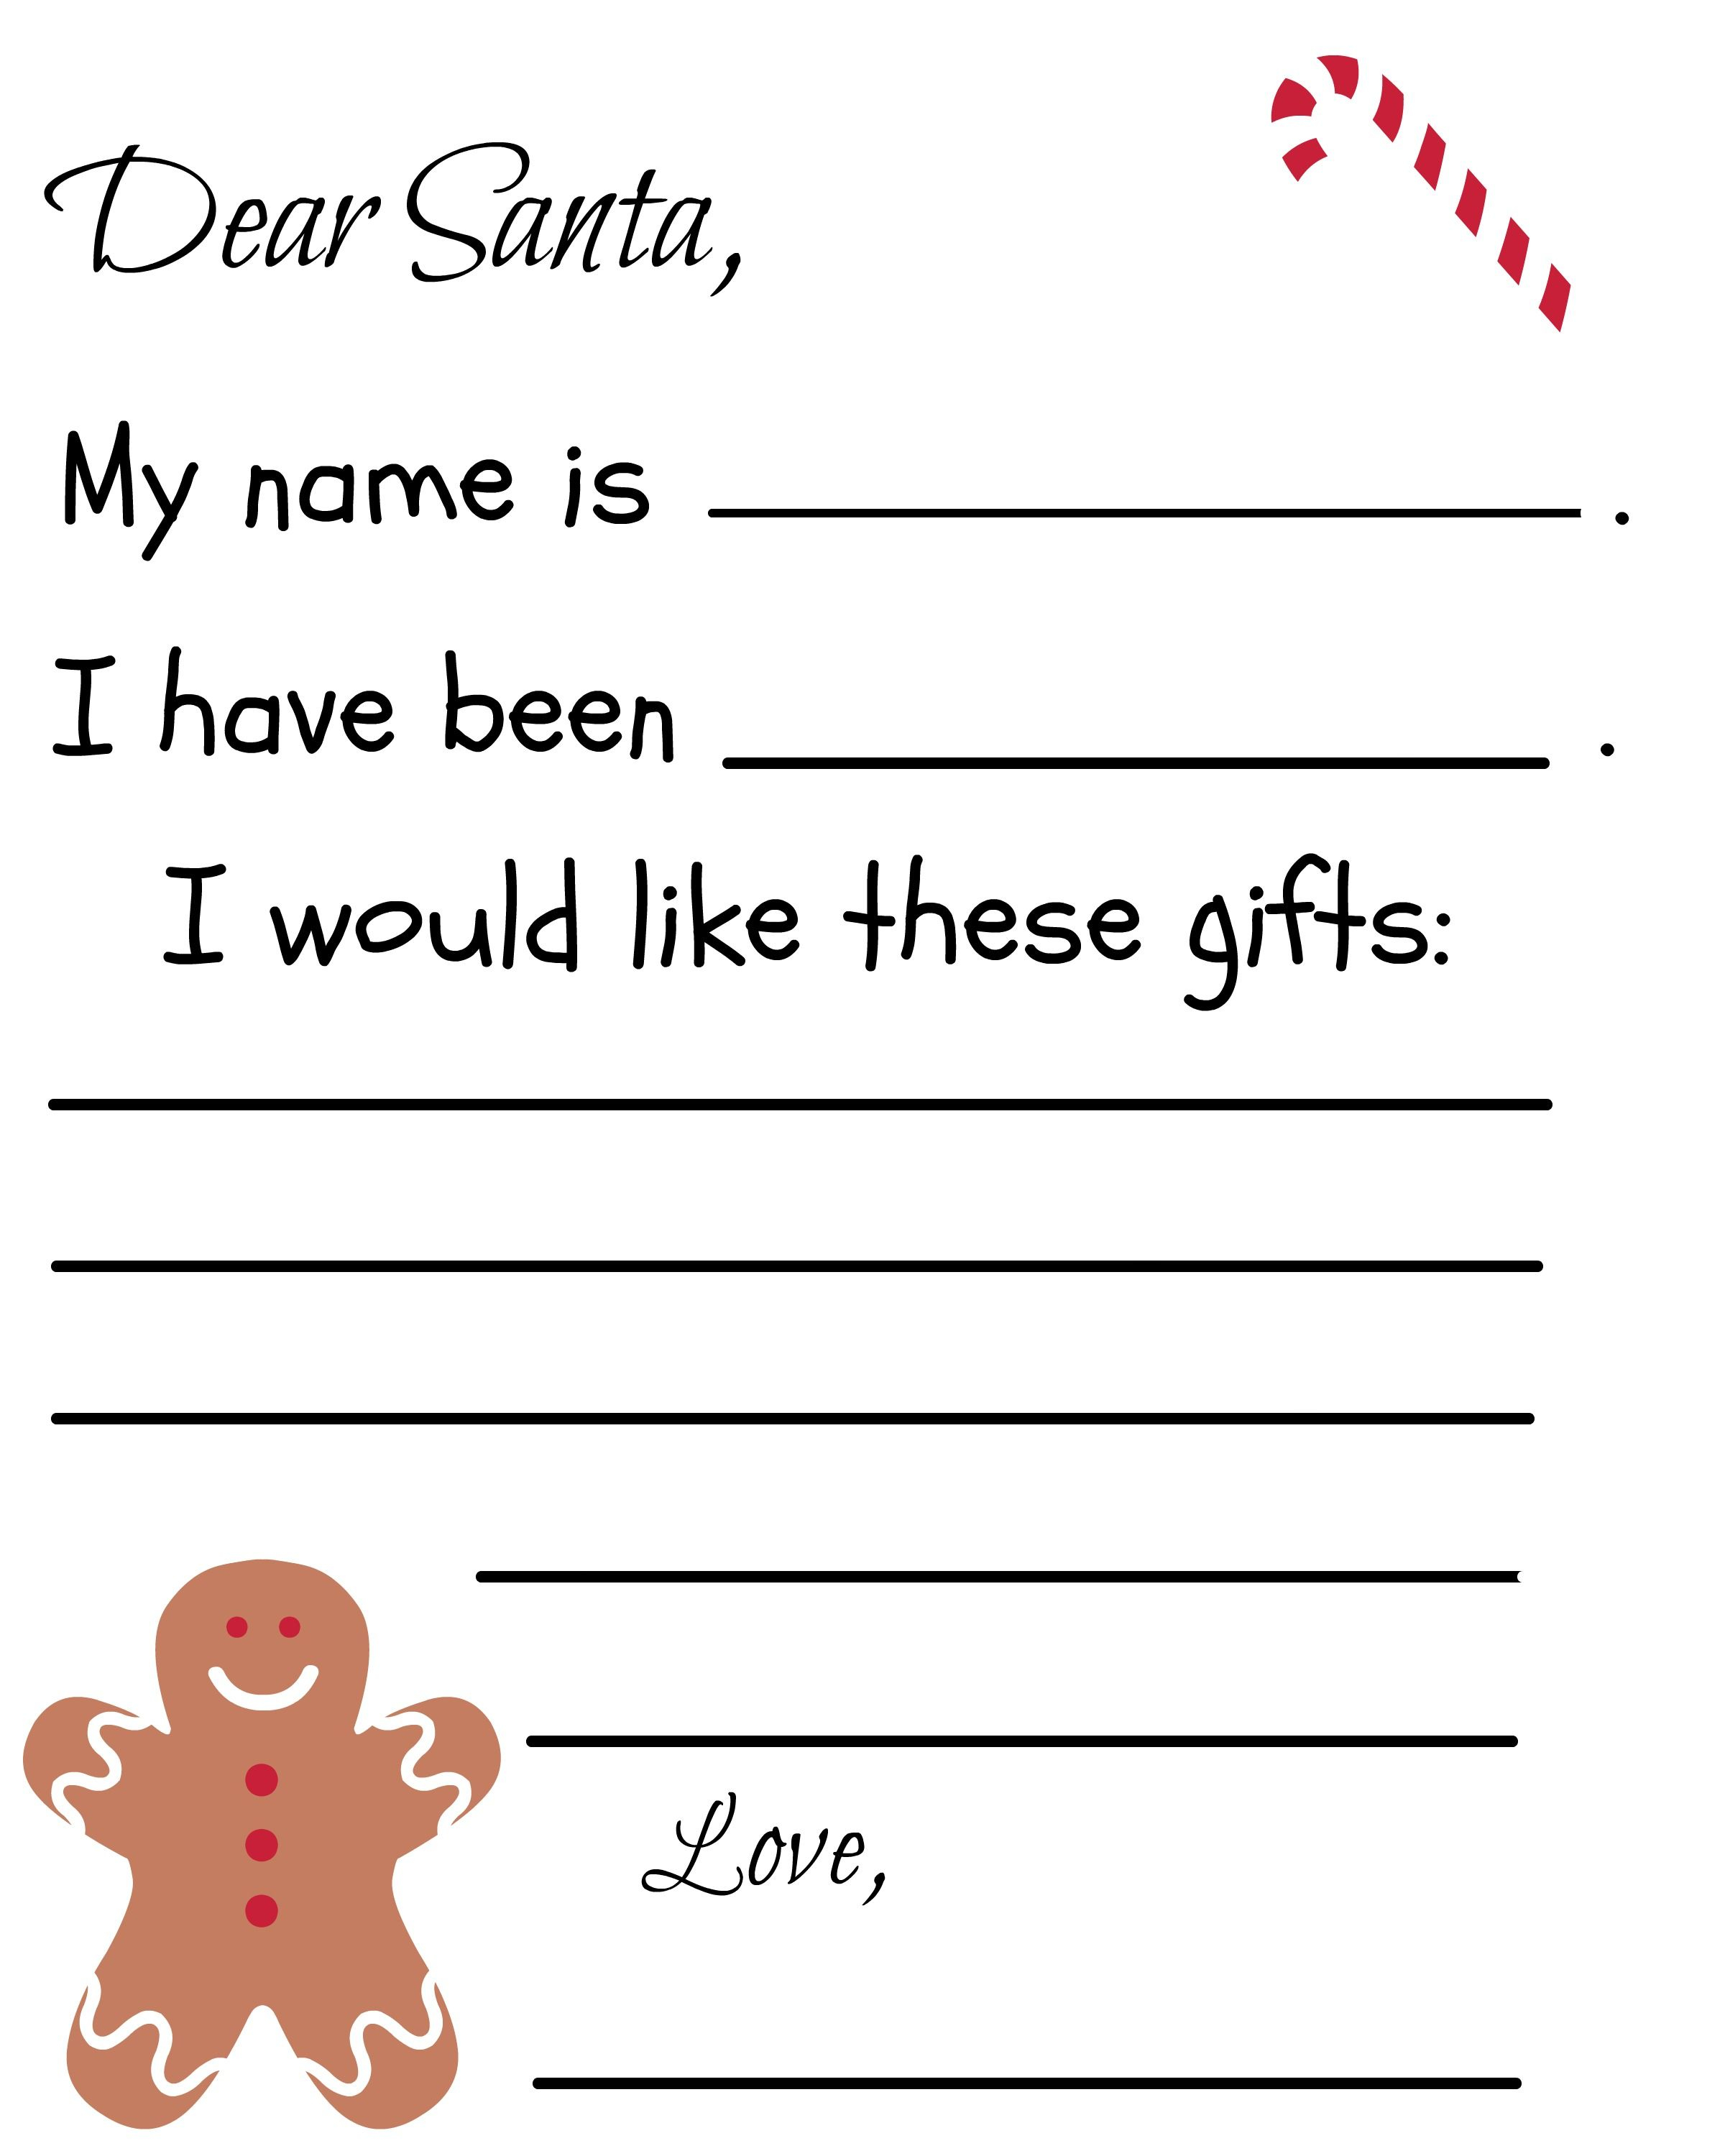 Free Printable Letter From Santa Template - Free Printable Santa Letter Template